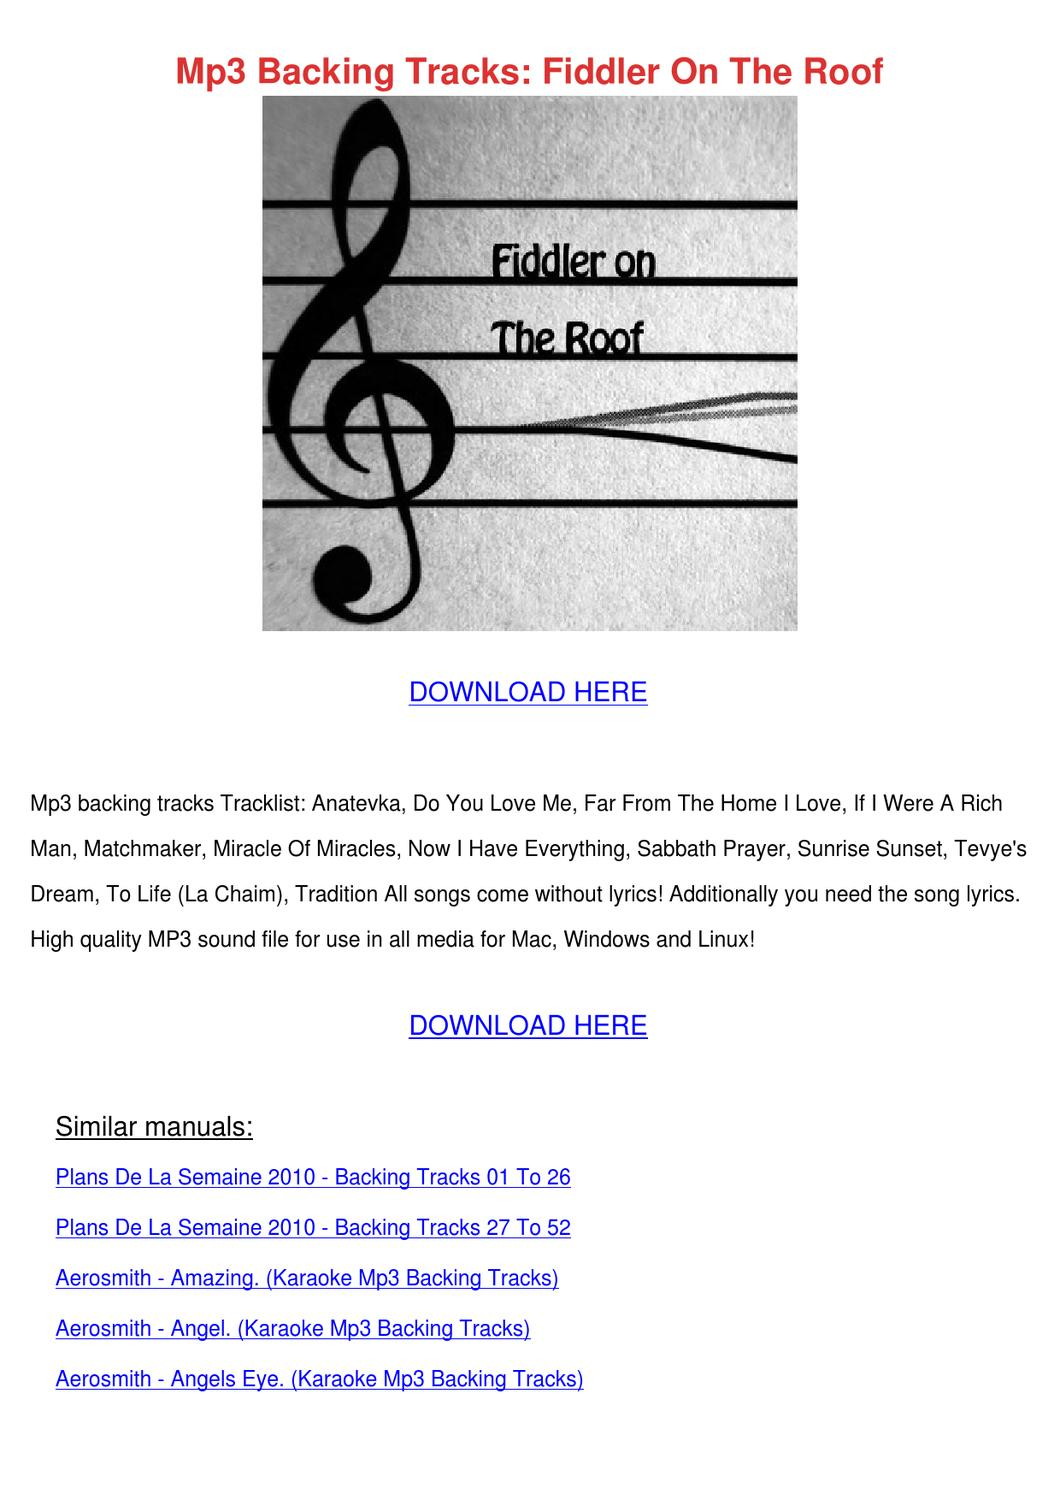 Mp3 Backing Tracks Fiddler On The Roof By Kari Mabey Issuu